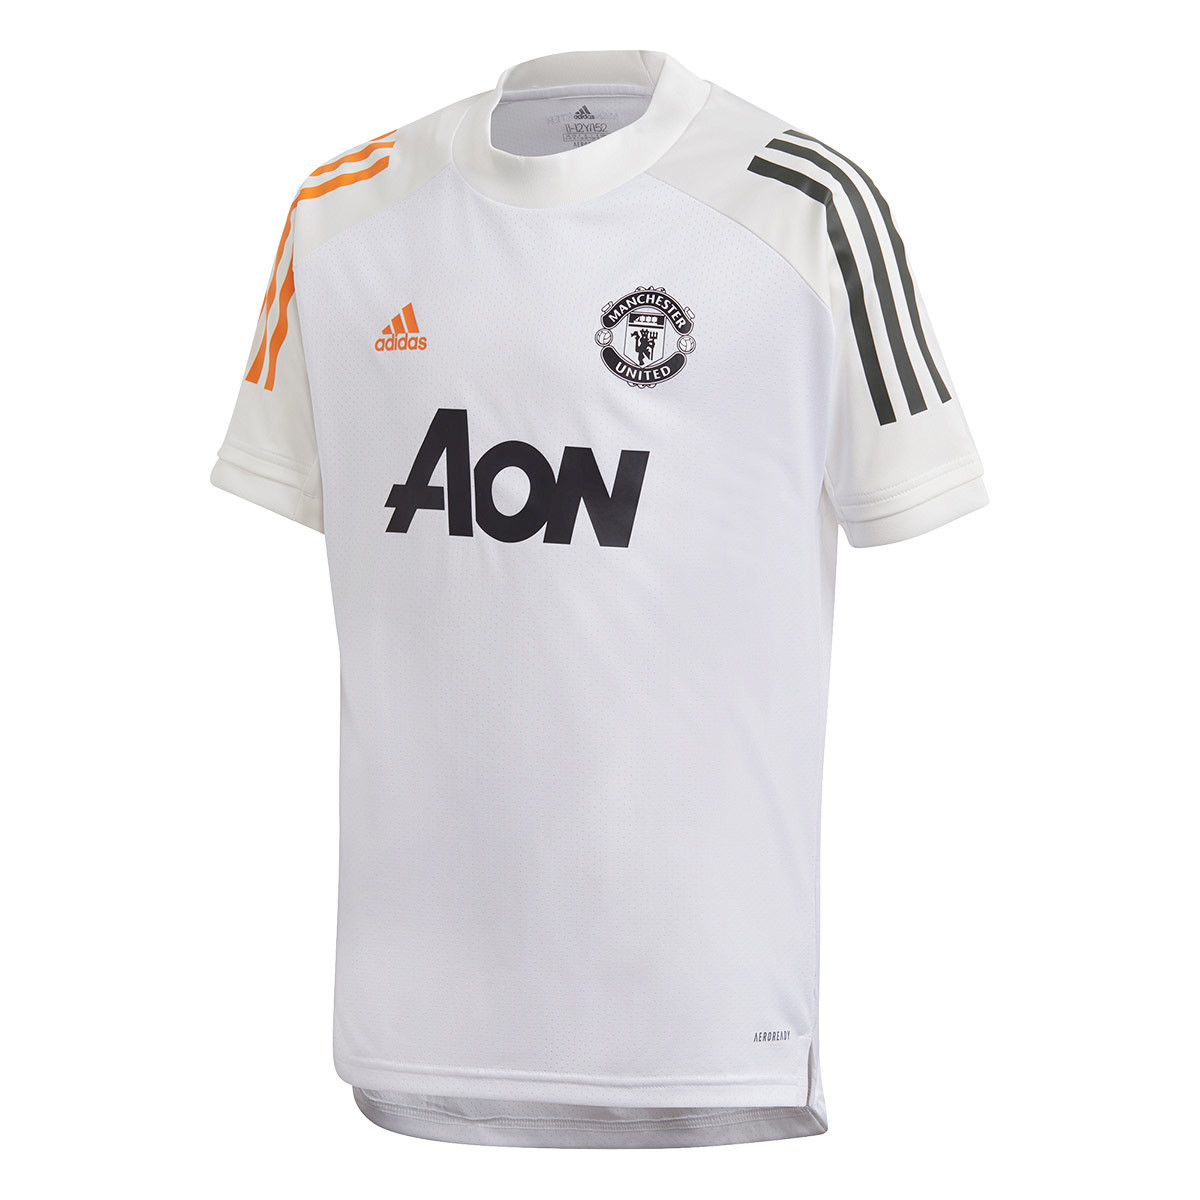 jersey adidas manchester united fc training 2020 2021 white football store futbol emotion adidas manchester united fc training 2020 2021 jersey